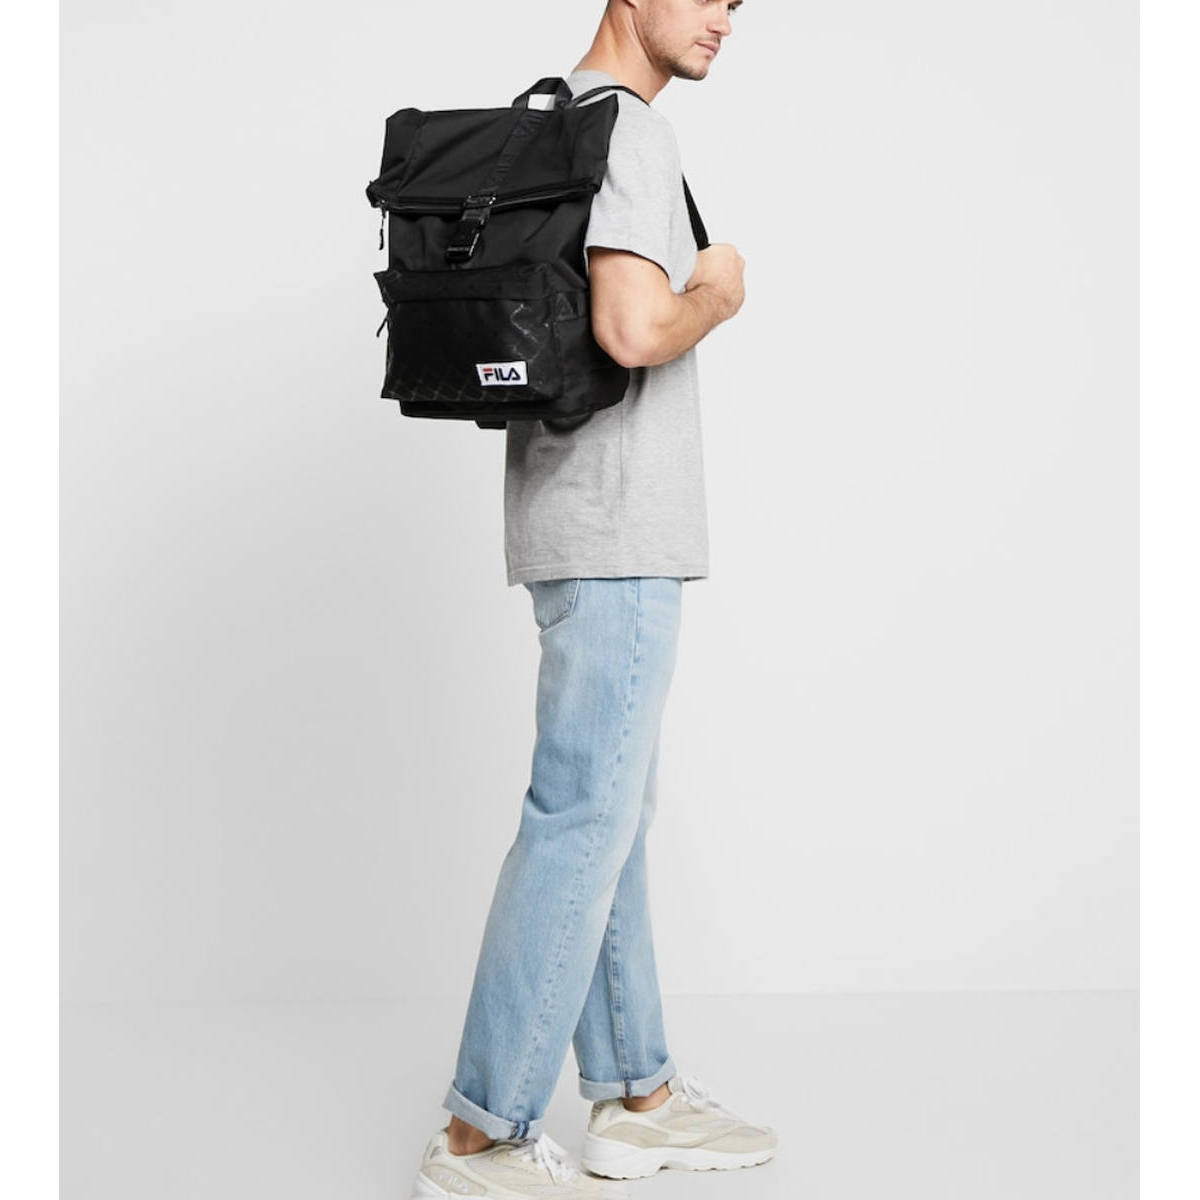 fila orebro backpack